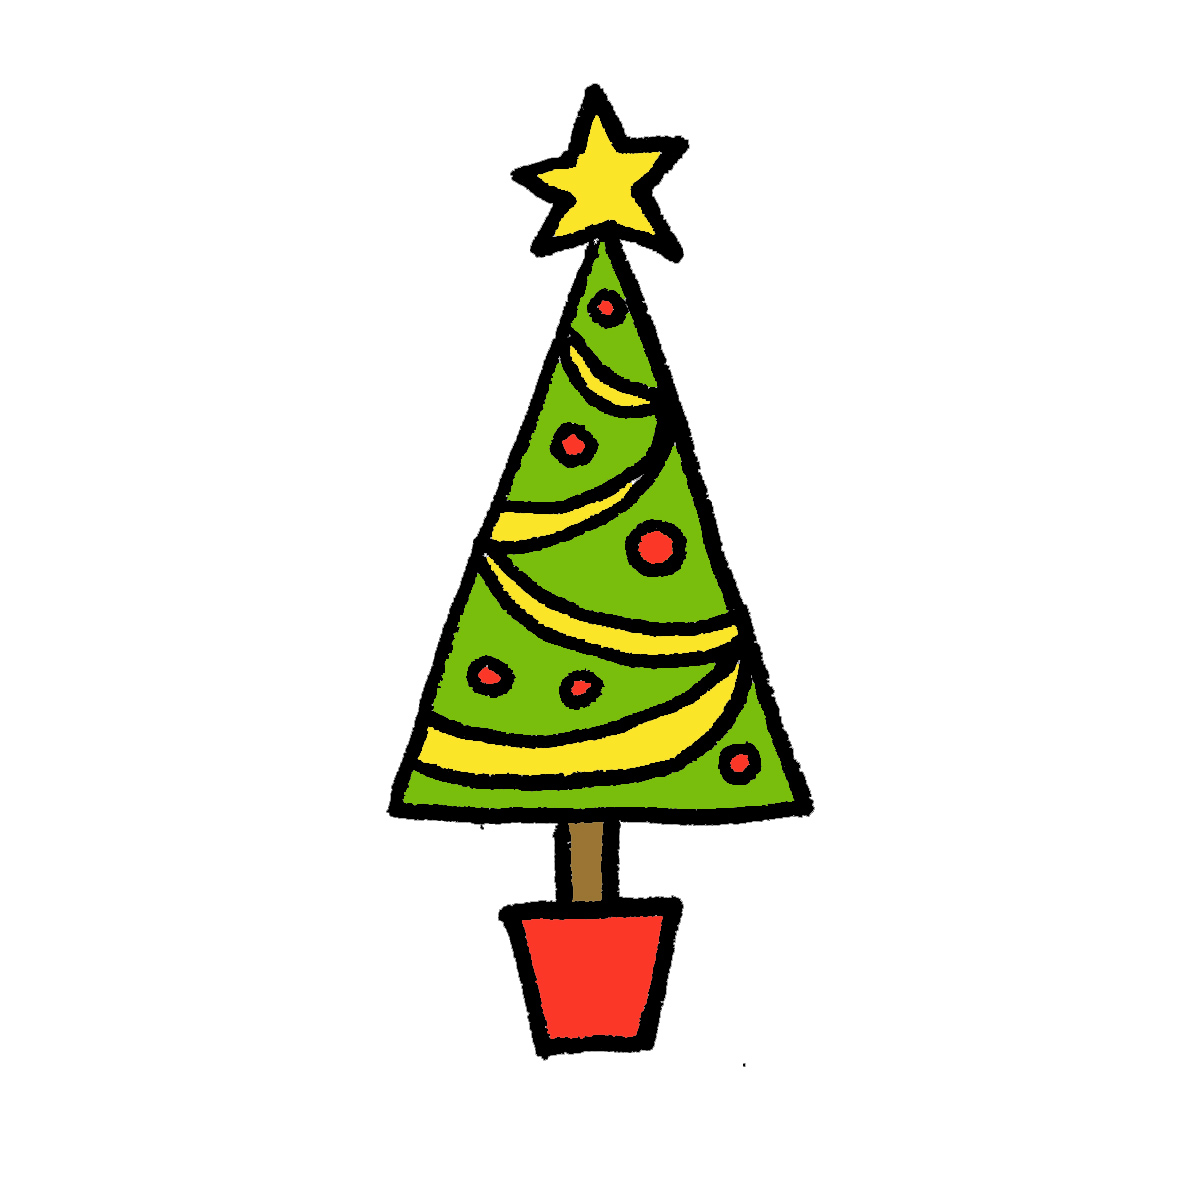 How To Draw A Realistic Christmas Tree.Realistic Christmas Tree Drawing Free Download Best